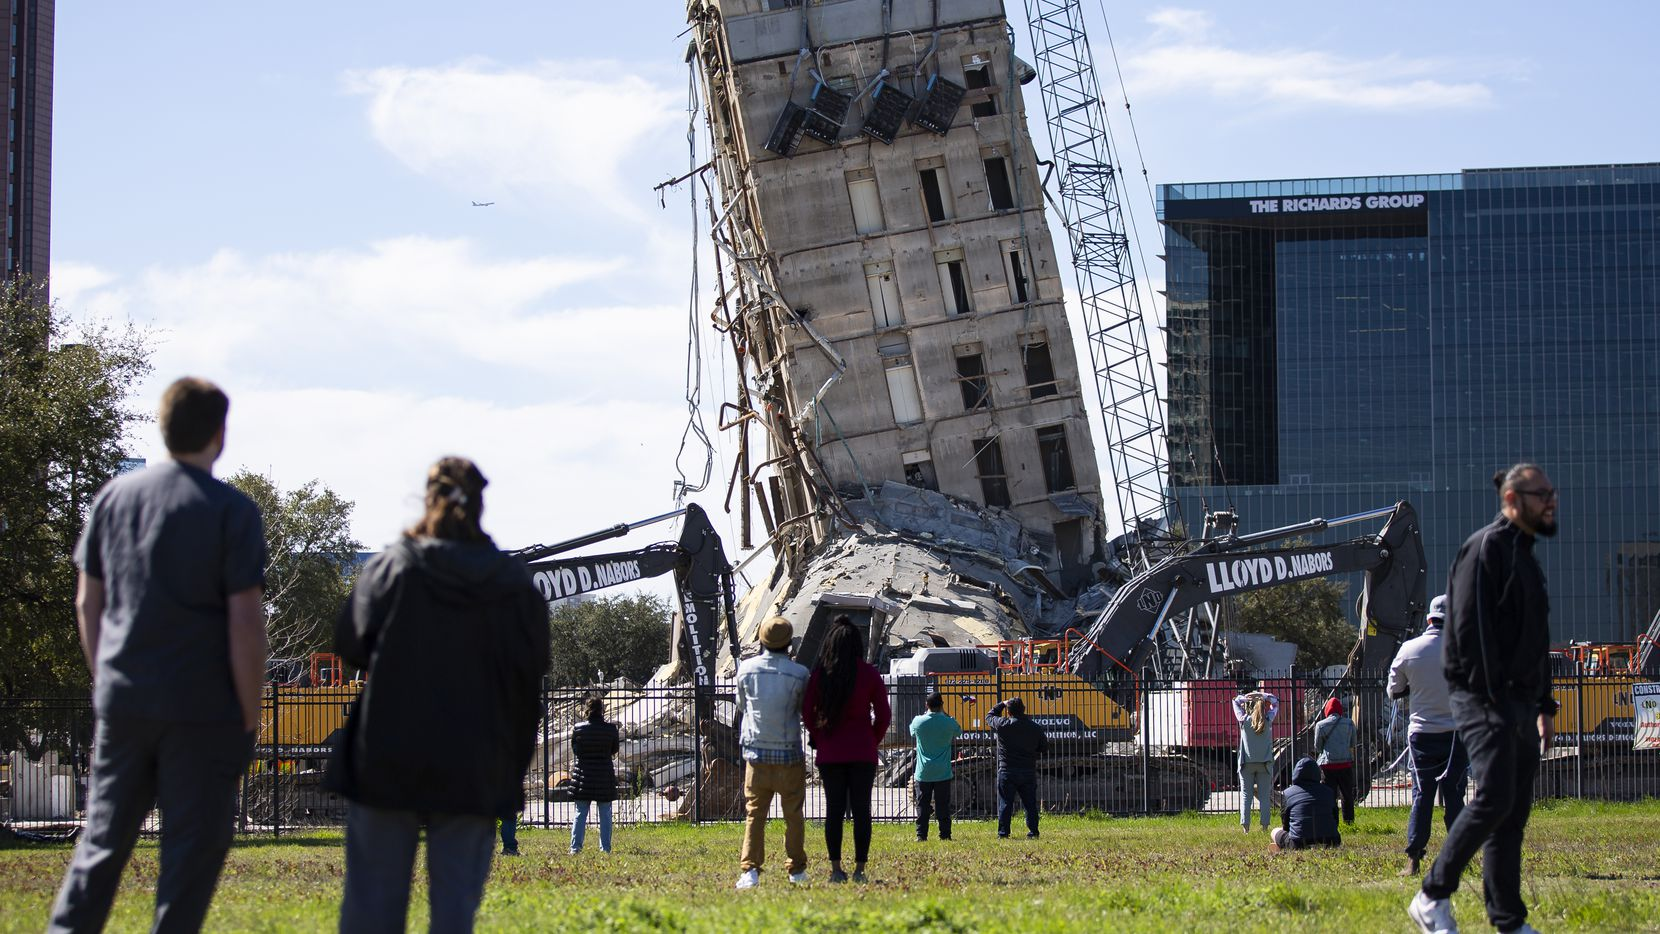 A crowd watches as a wrecking ball chips away at the top levels of the former Affiliated Computer Services building with a wrecking ball on Monday, Feb. 24, 2020 in Dallas.